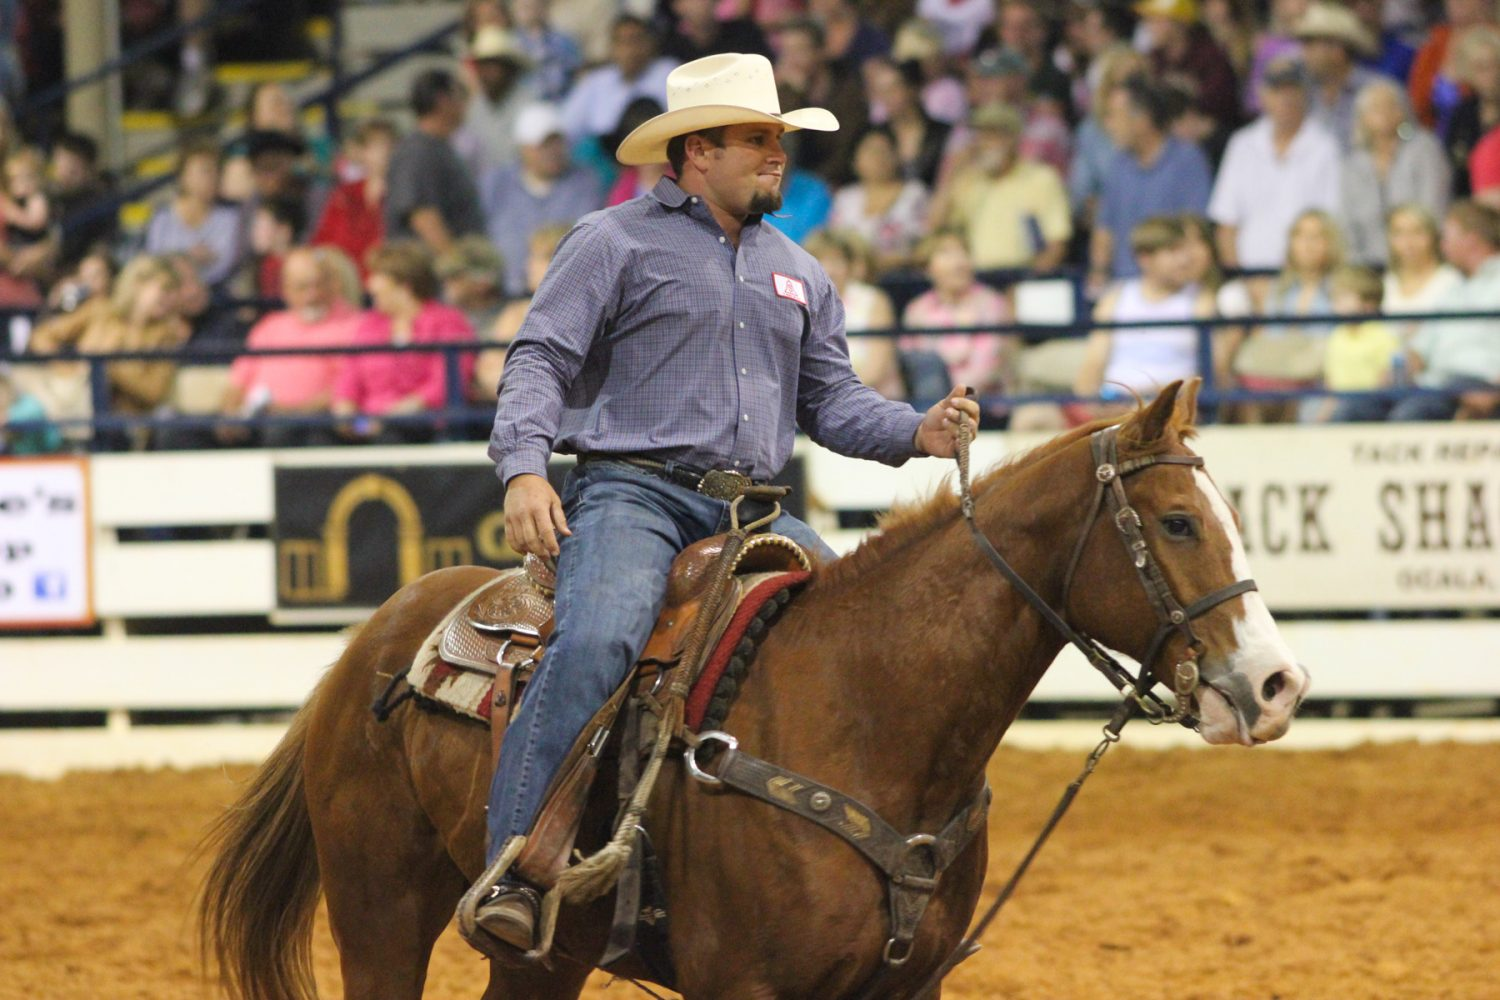 Leo Mobley of McAlpine, Fla. rides back to the shoots after competing in the steer wrestling competition at the Ocala Pro Rodeo on Saturday night, March 22, 2014.